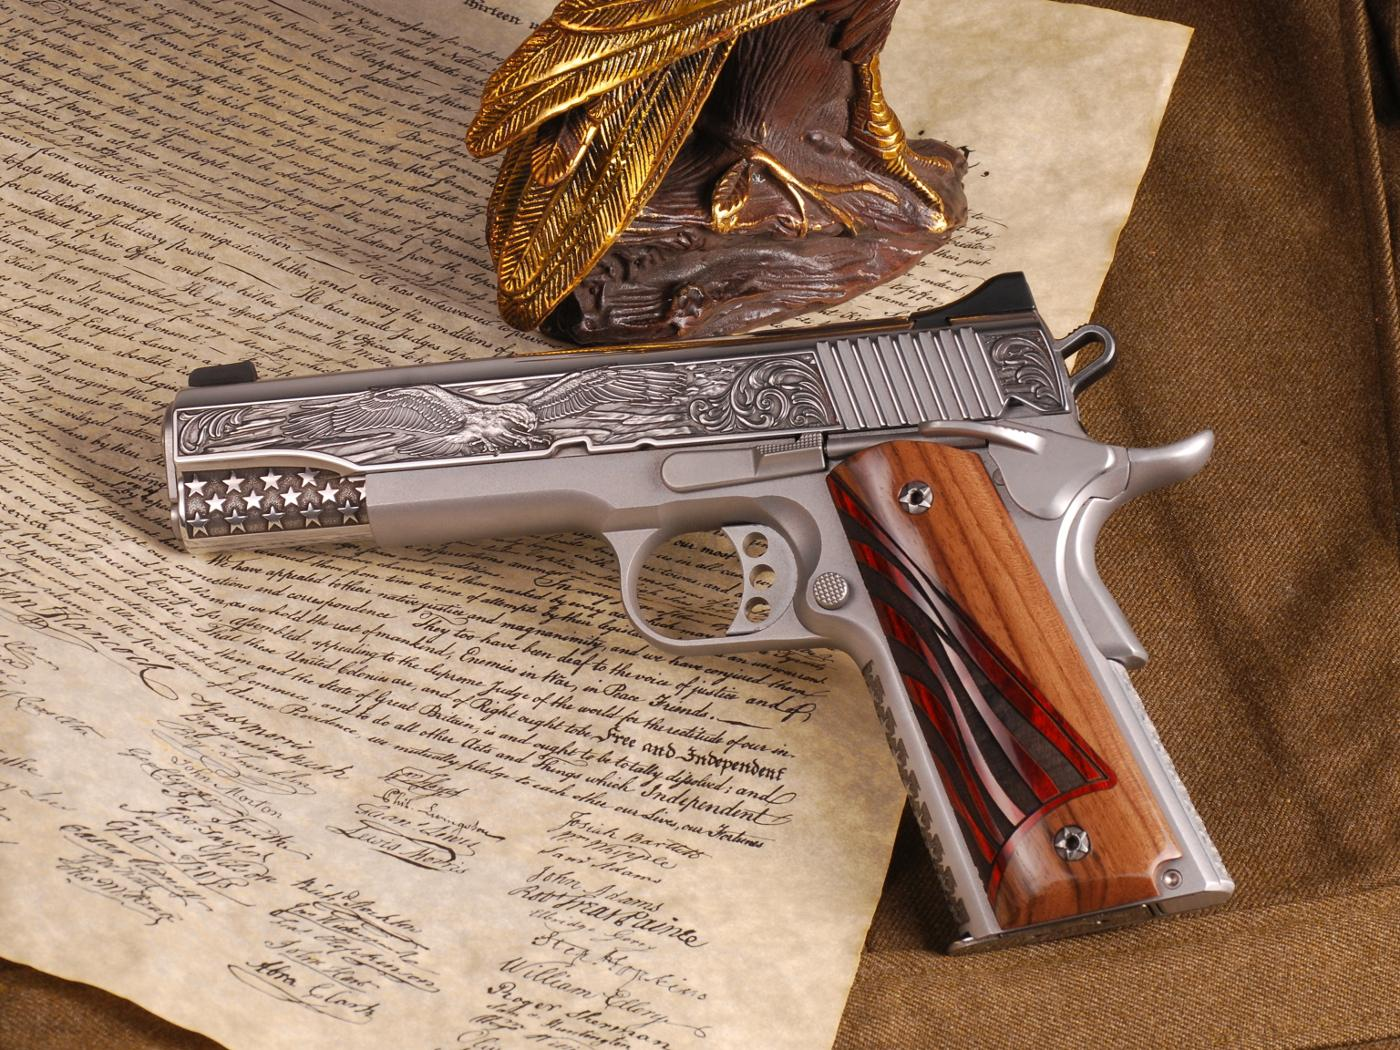 Altamont The American Patriot 1911